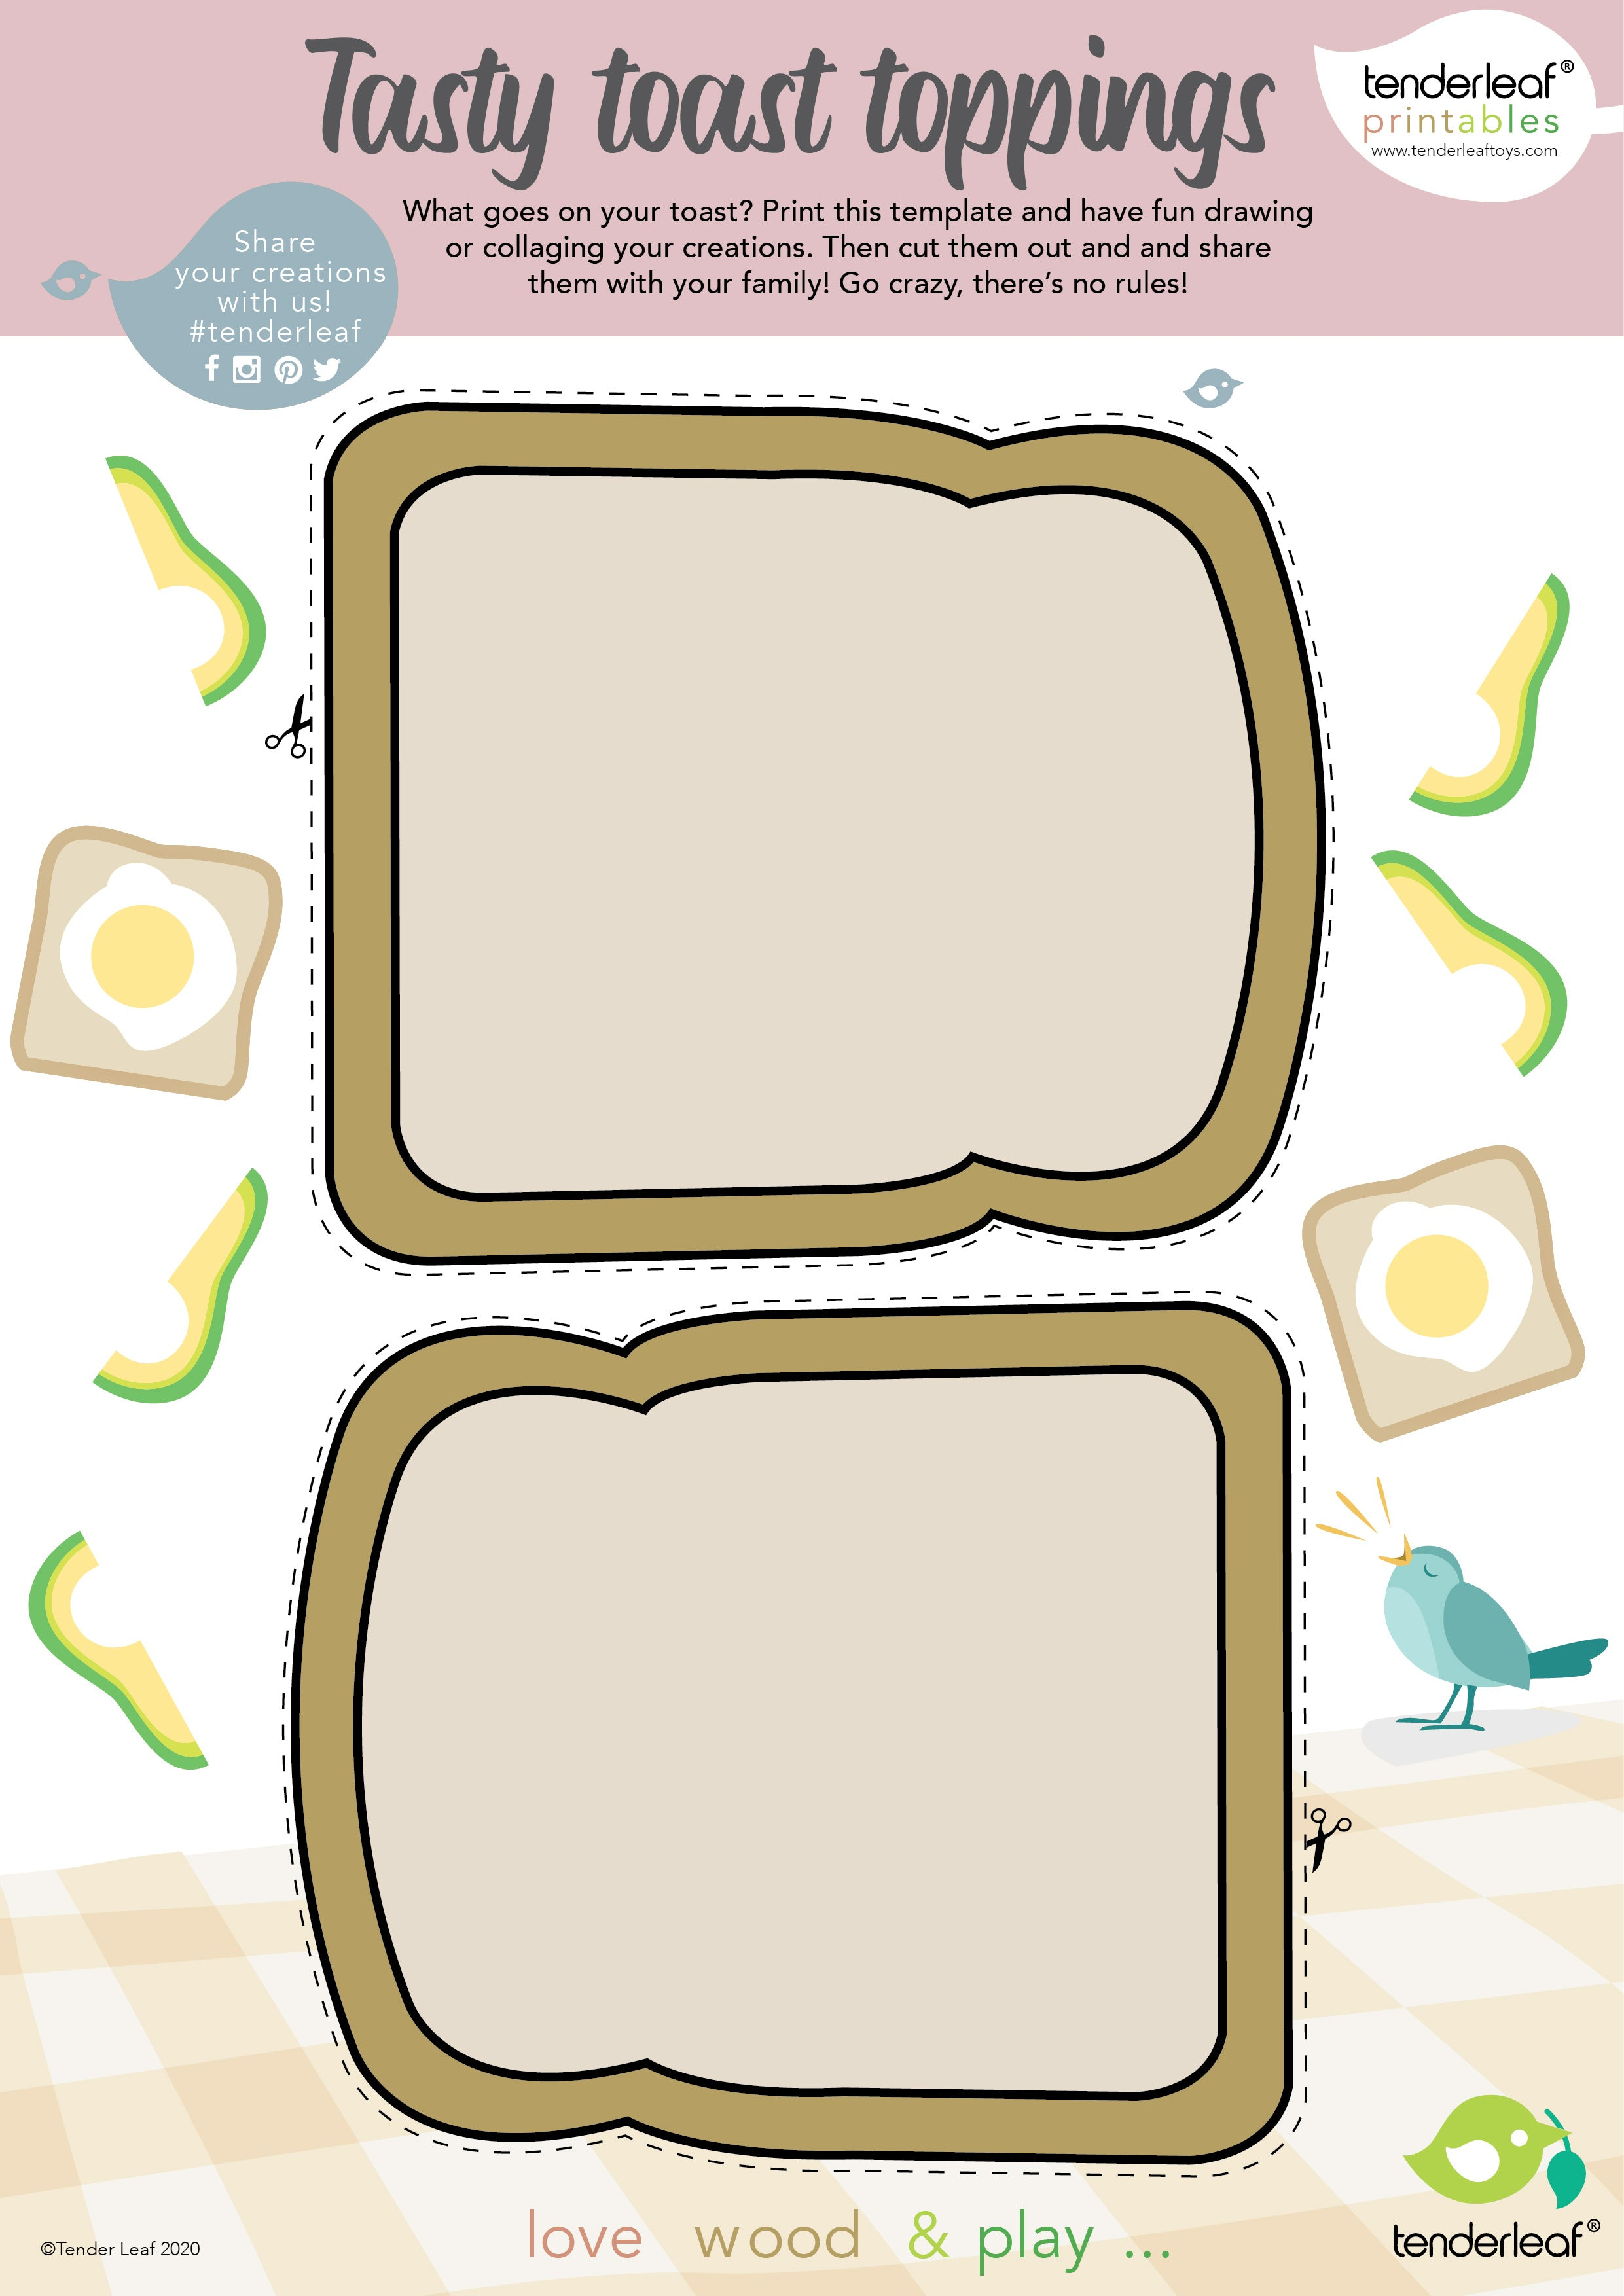 toaster,toast,free, download,printable,crafty,kids,children,arty,